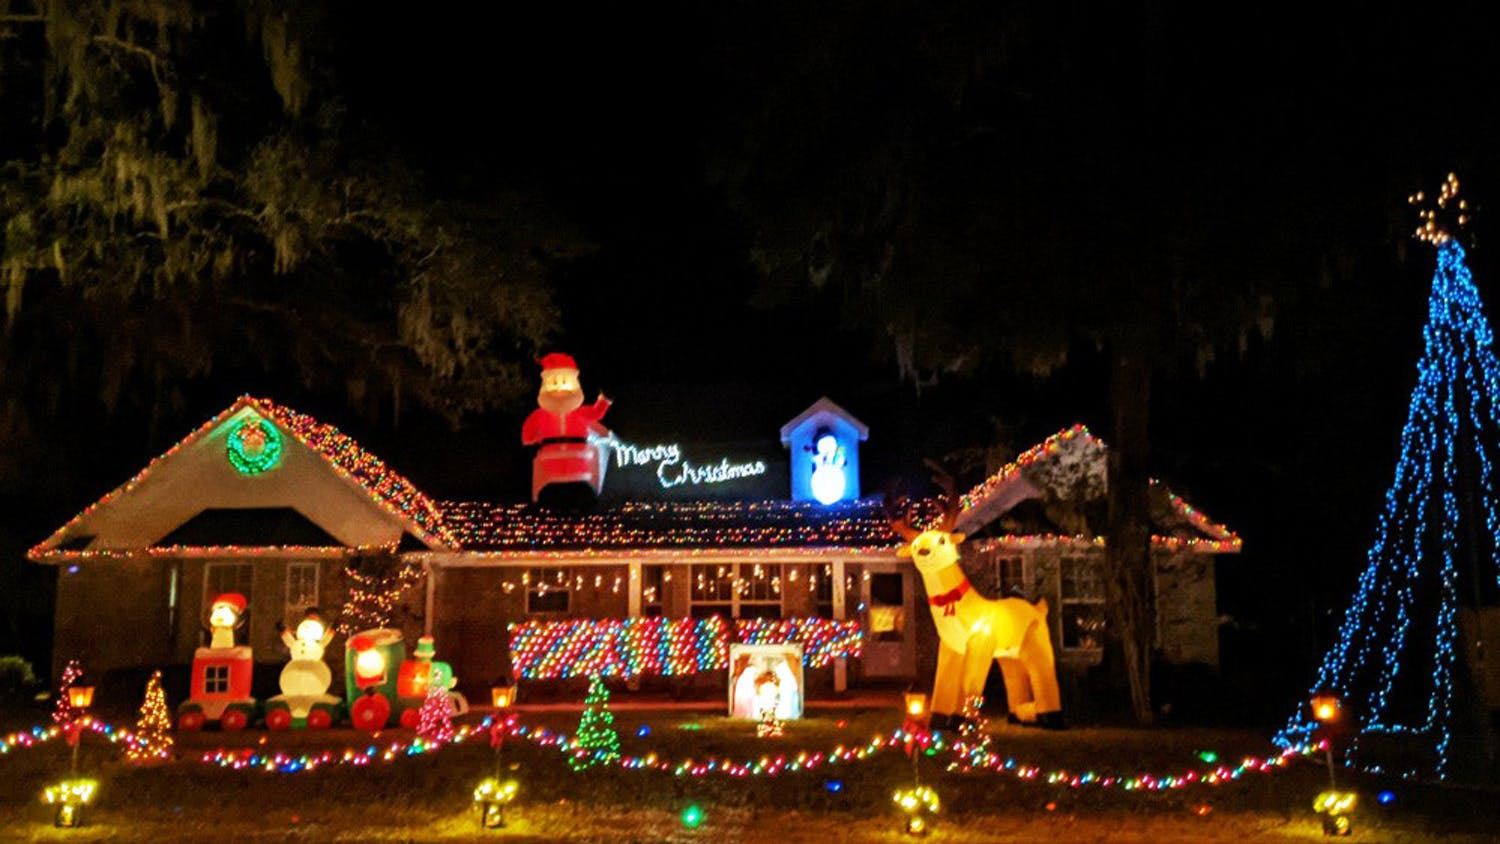 Logan Euler, 19, runs a light show at his dad's house in Newberry, Fla. Starting Dec. 3, 2020, cars can tune into a radio station as they drive by to hear the curated music and messages from the show every night  from 6-9 p.m. Sunday-Thursday and 6 p.m. to 12 a.m. on Fridays and Saturdays.